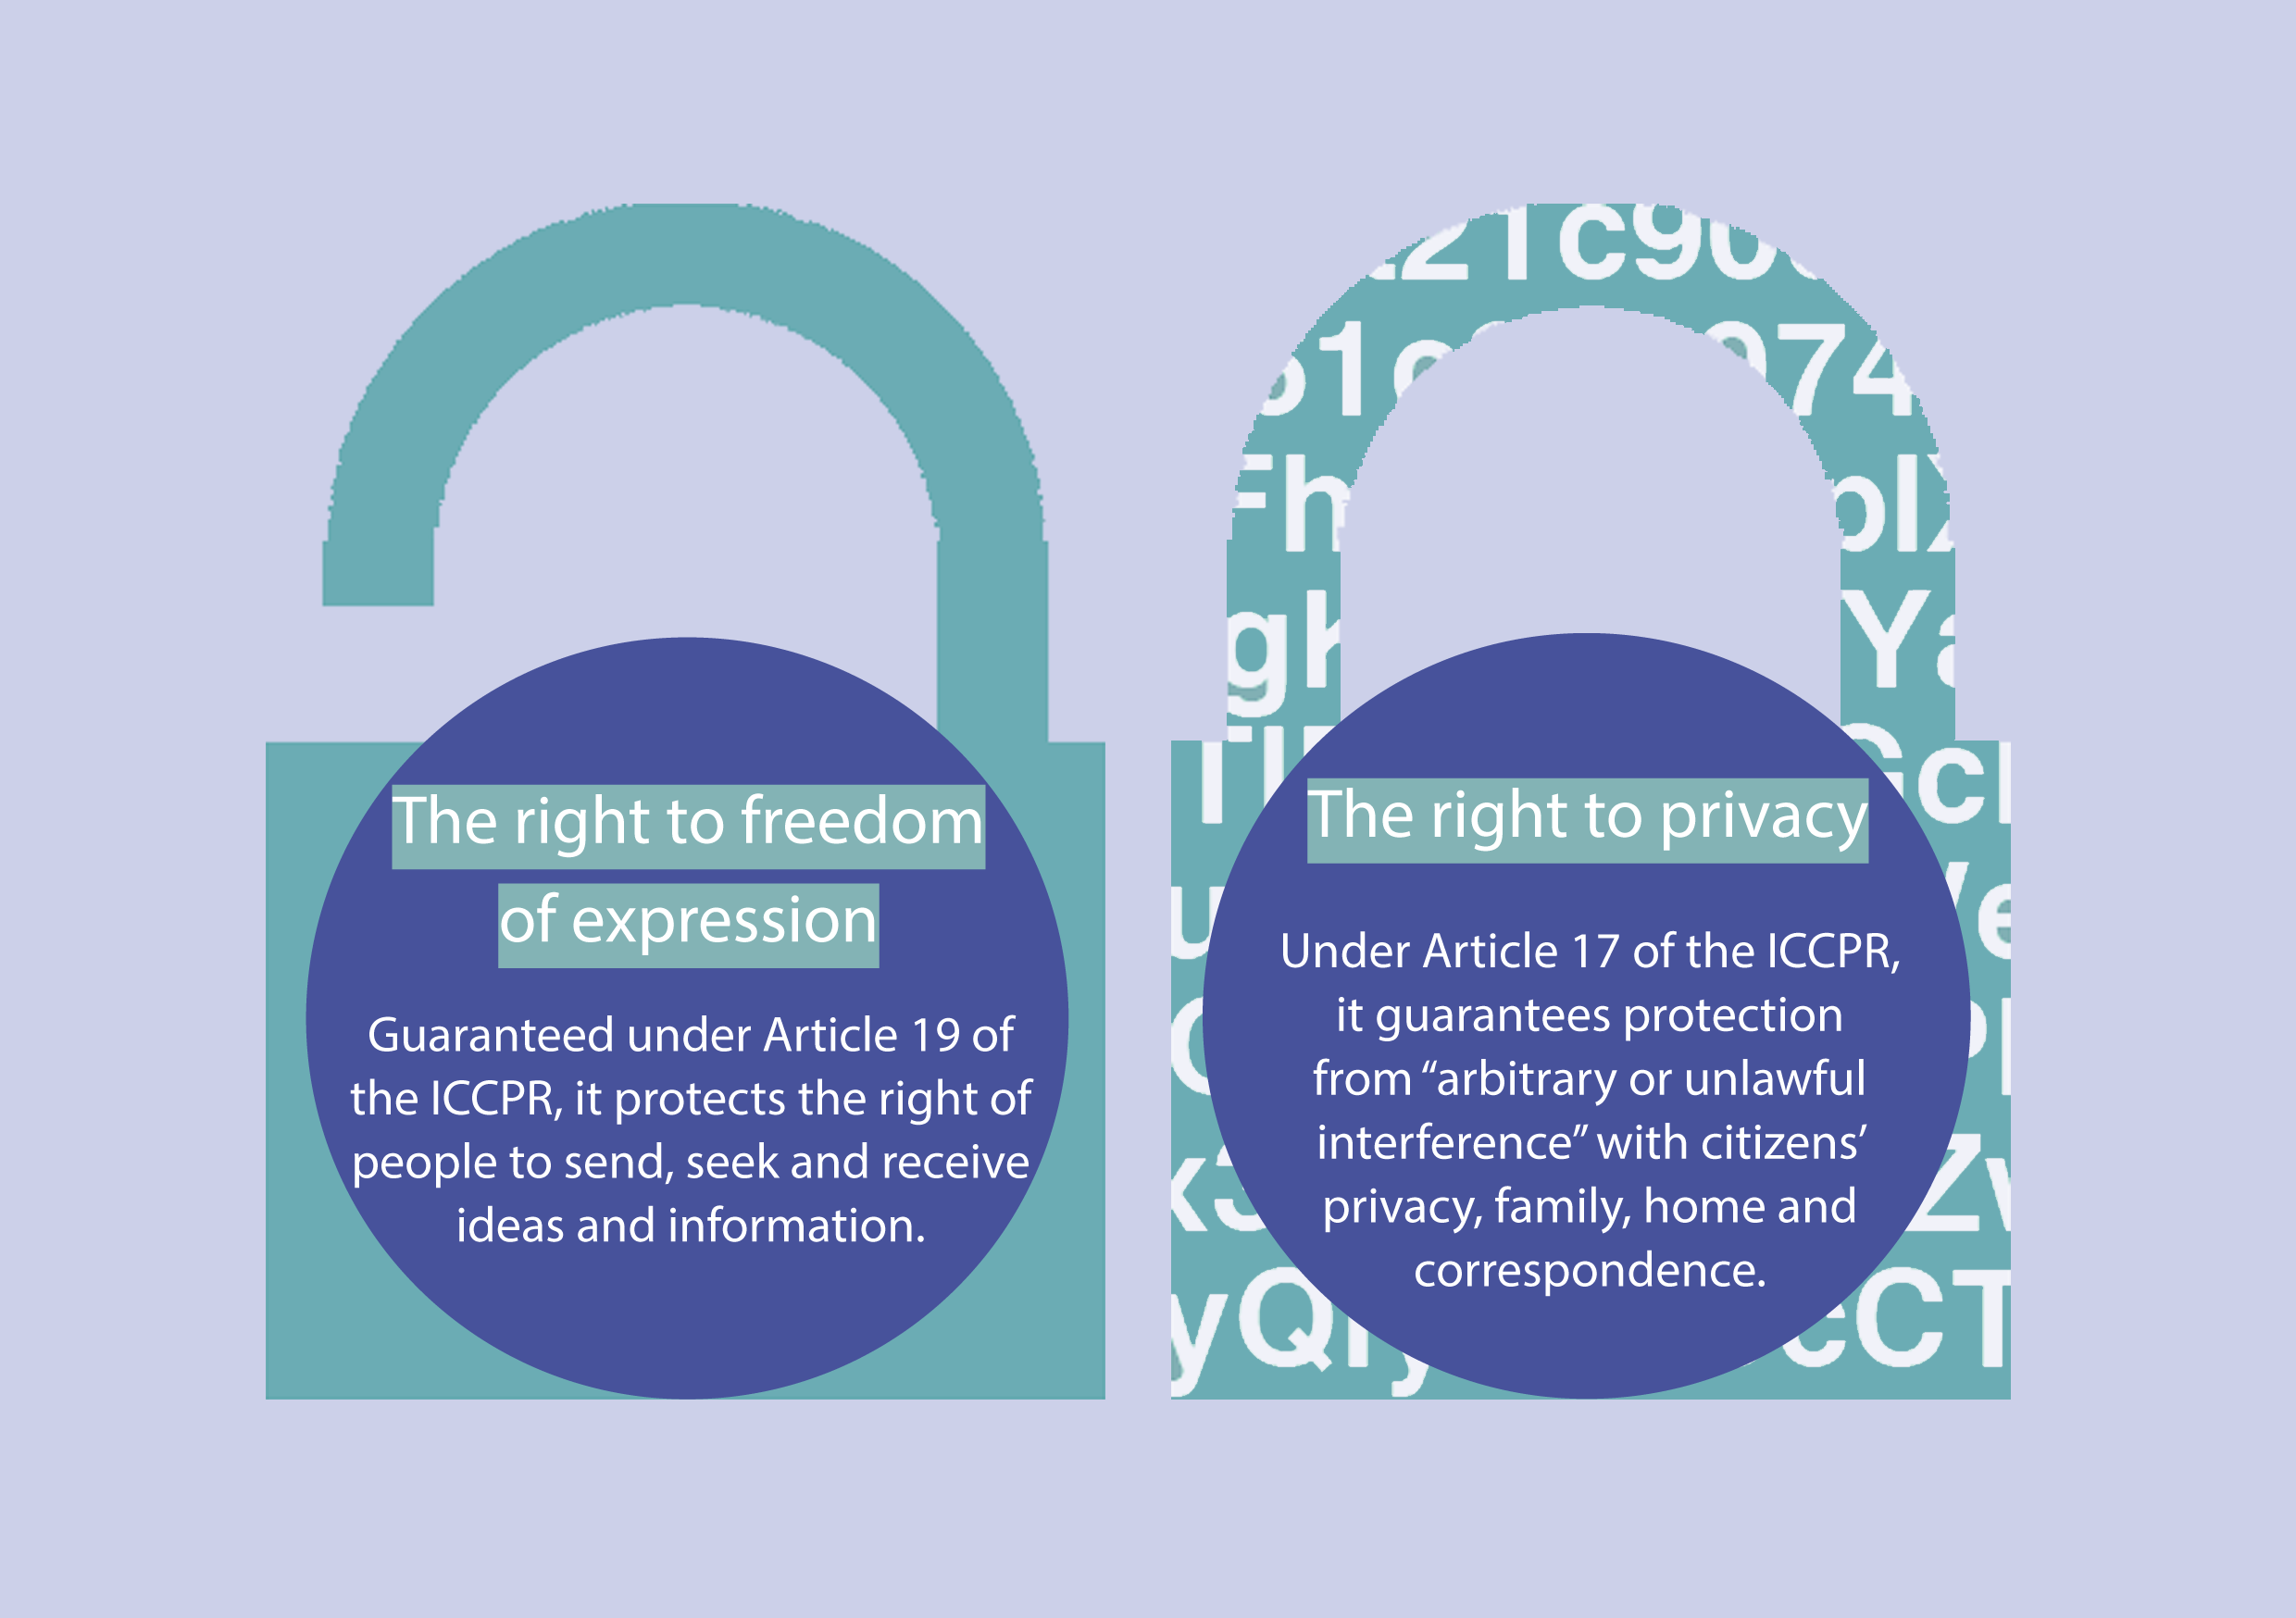 Writers' Ethics: Freedom of Information and the Right of Privacy